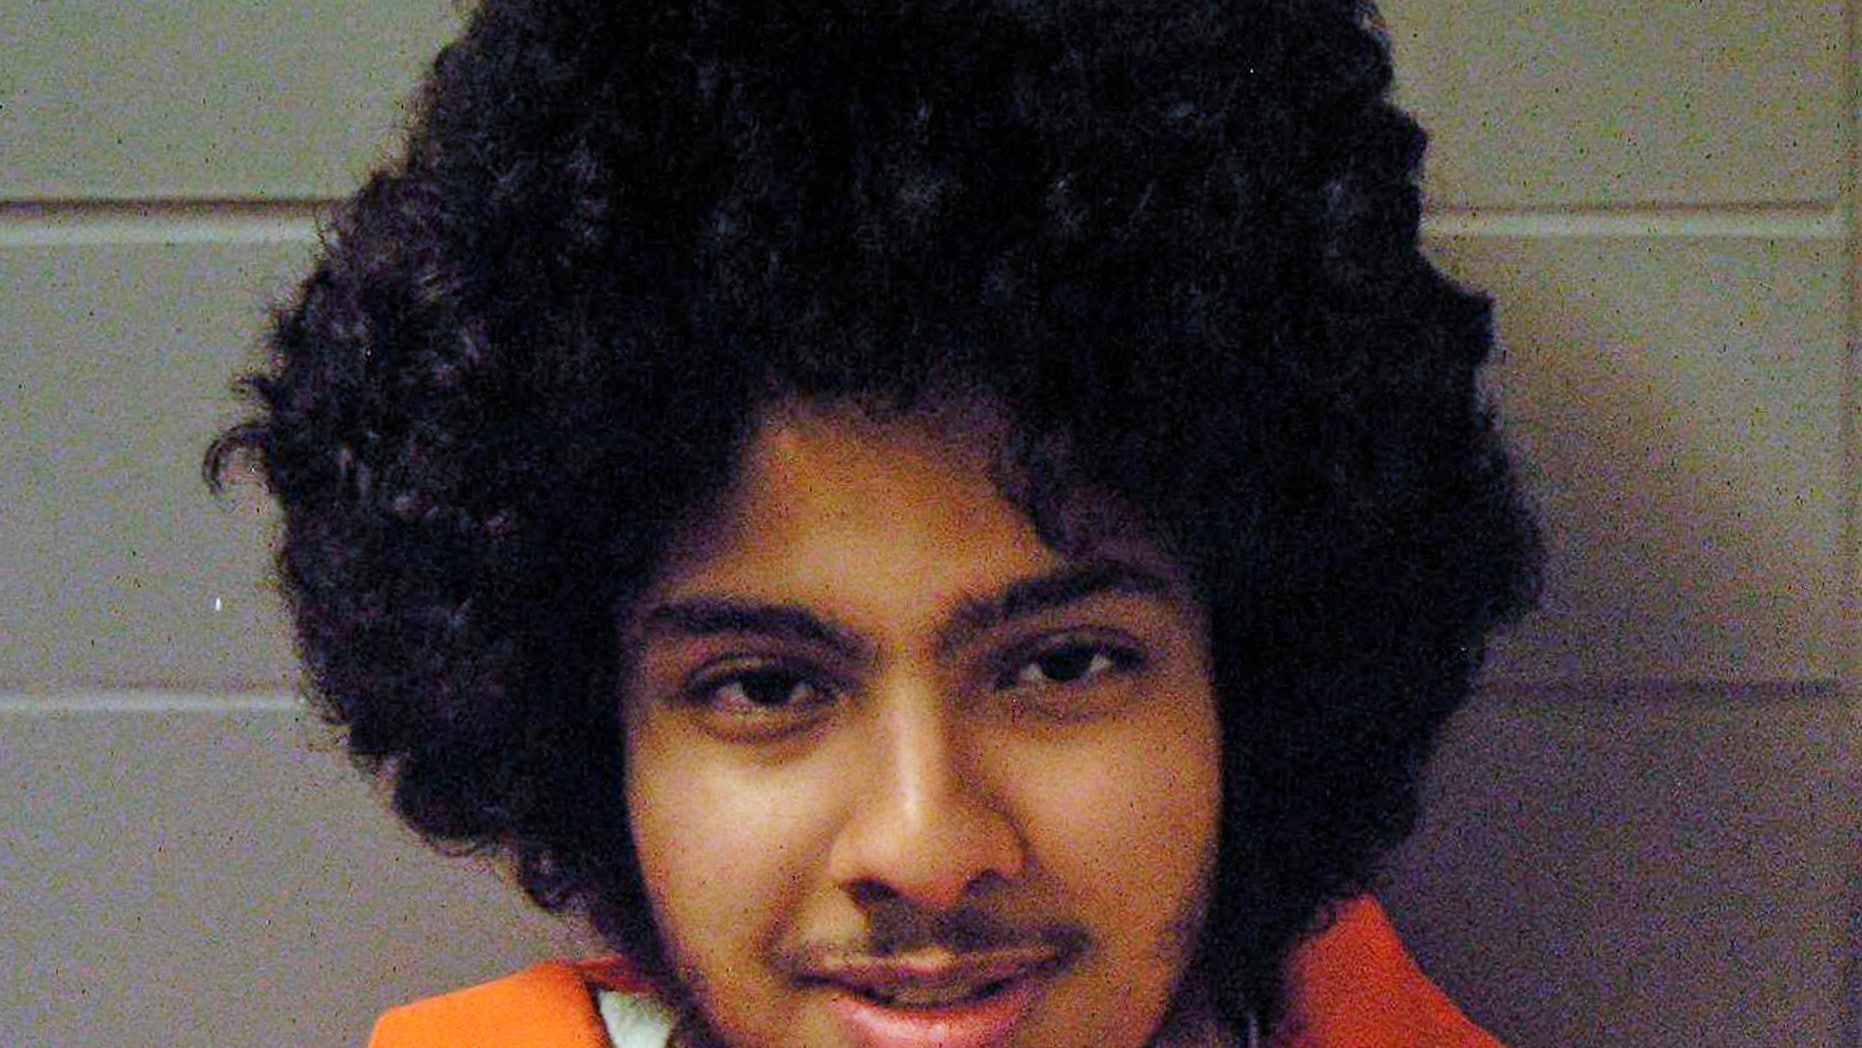 FILE - This undated file photo provided by the U.S. Marshals office shows Chicago terrorism suspect Adel Daoud. Prosecutors and defense lawyers have recommended starkly different sentences for the 25-year-old convicted terrorist whose multi day sentencing hearing starts Monday. In Friday, April 26, 2019 court filings, prosecutors requested a 40-year prison term for Daoud, arrested in a 2012 FBI sting after trying to detonate what he believed was a real bomb by a crowded Chicago bar. The defense wants him released by 2021 or earlier, as soon as a treatment program for his mental health needs can be developed. (U.S. Marshals office via AP, File)